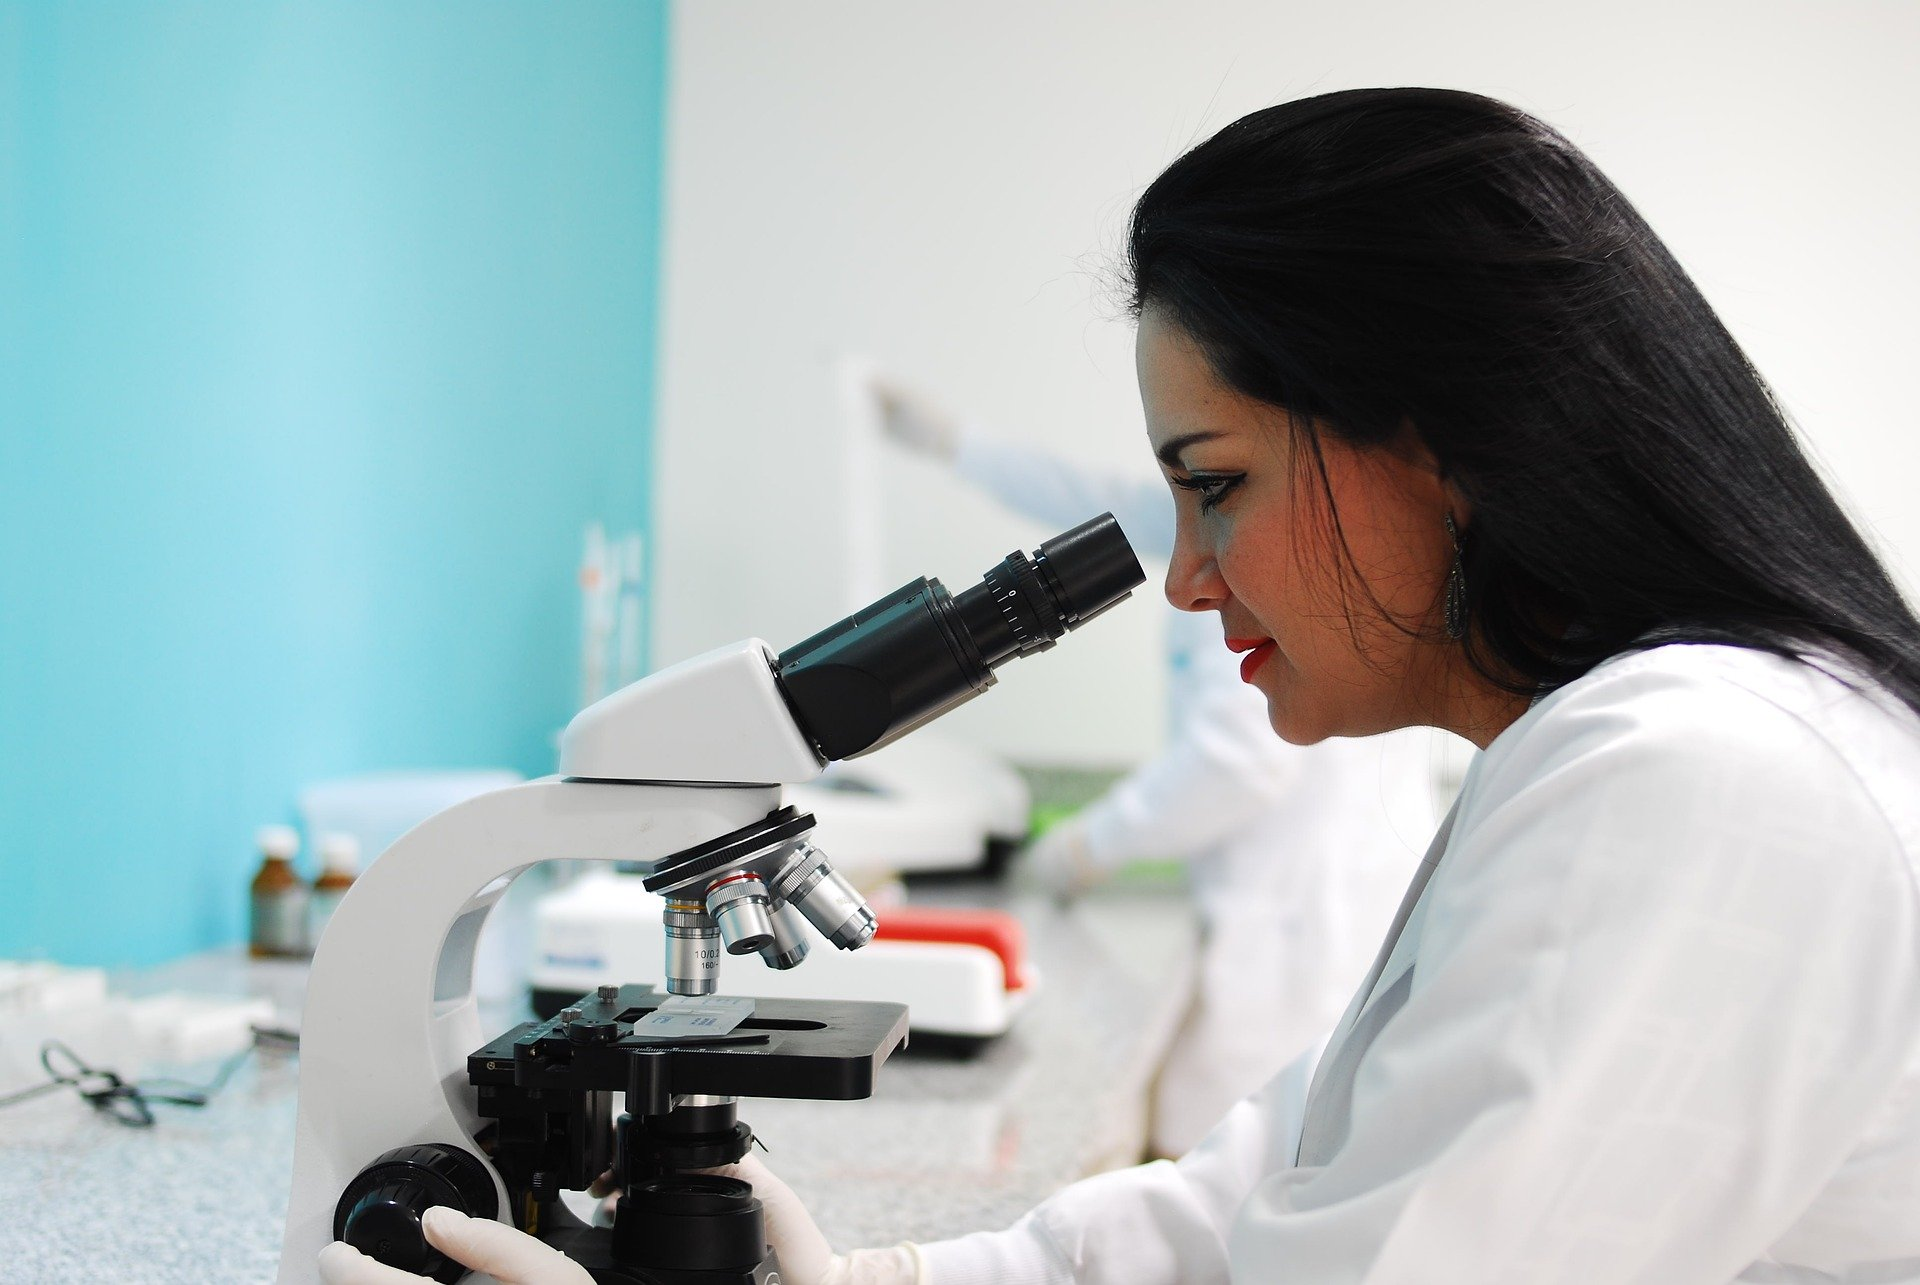 Female professional using a microscope